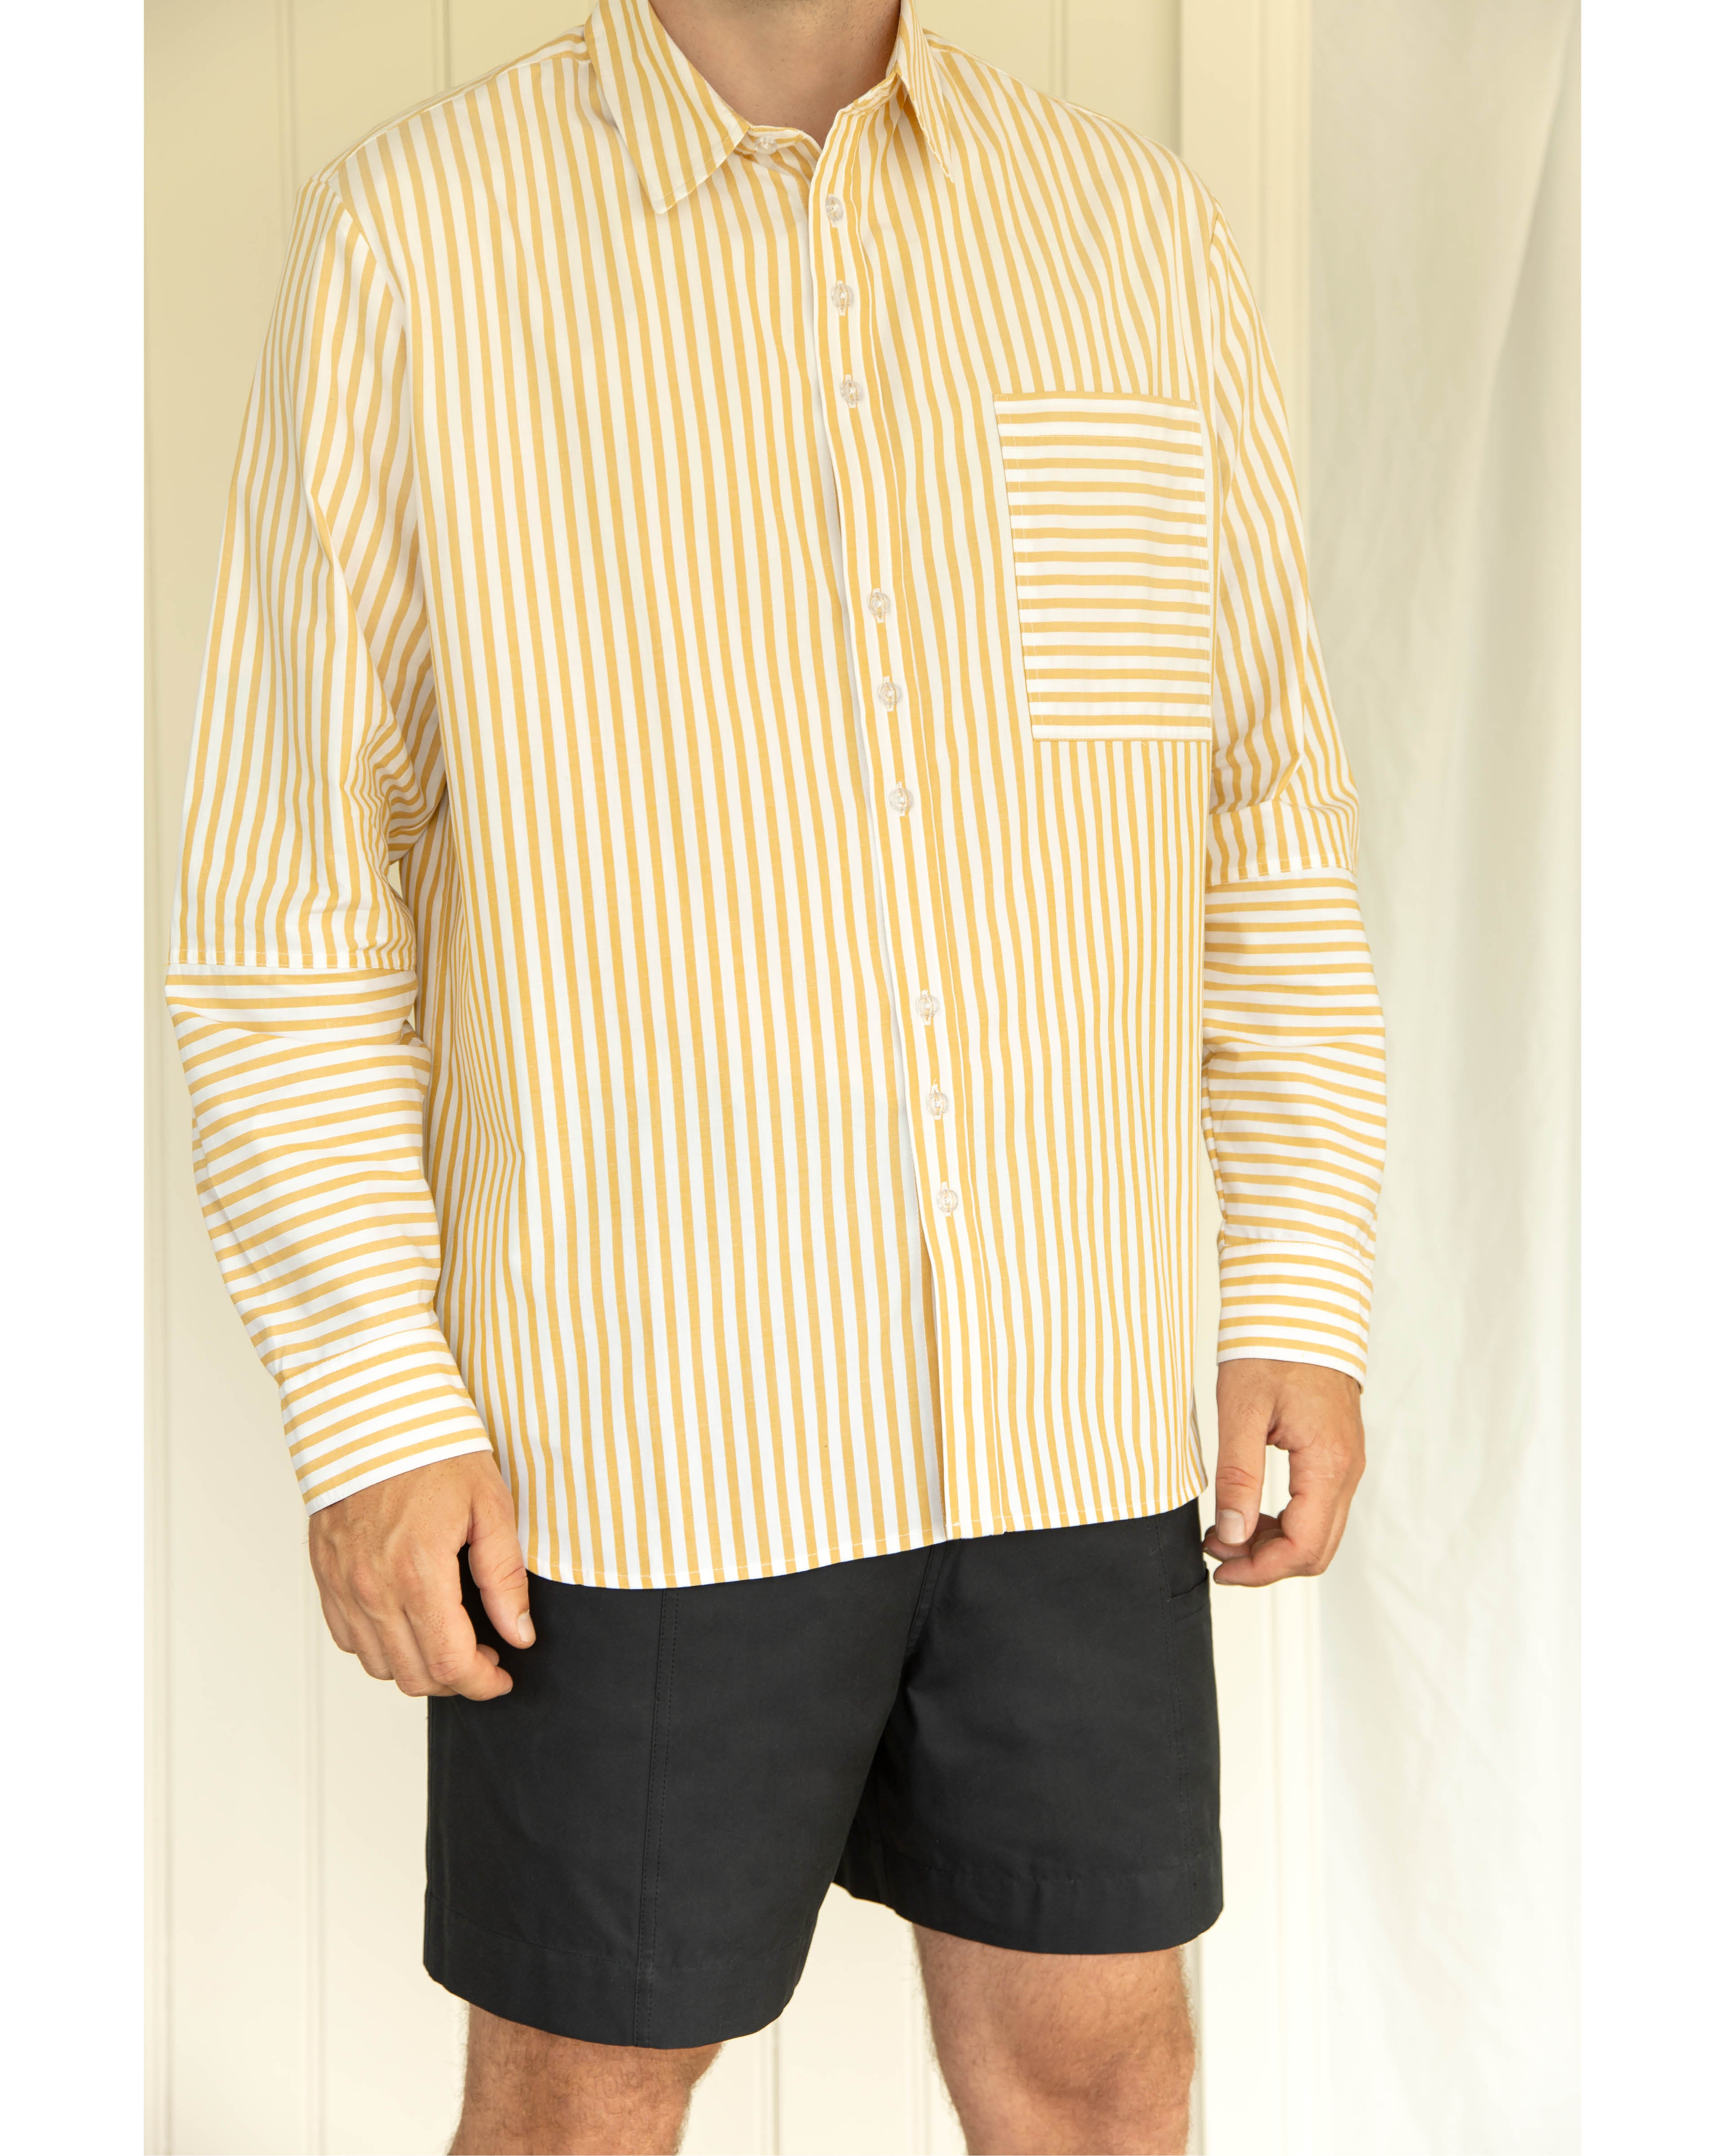 Organic Cotton Shirt - Ochre Stripe